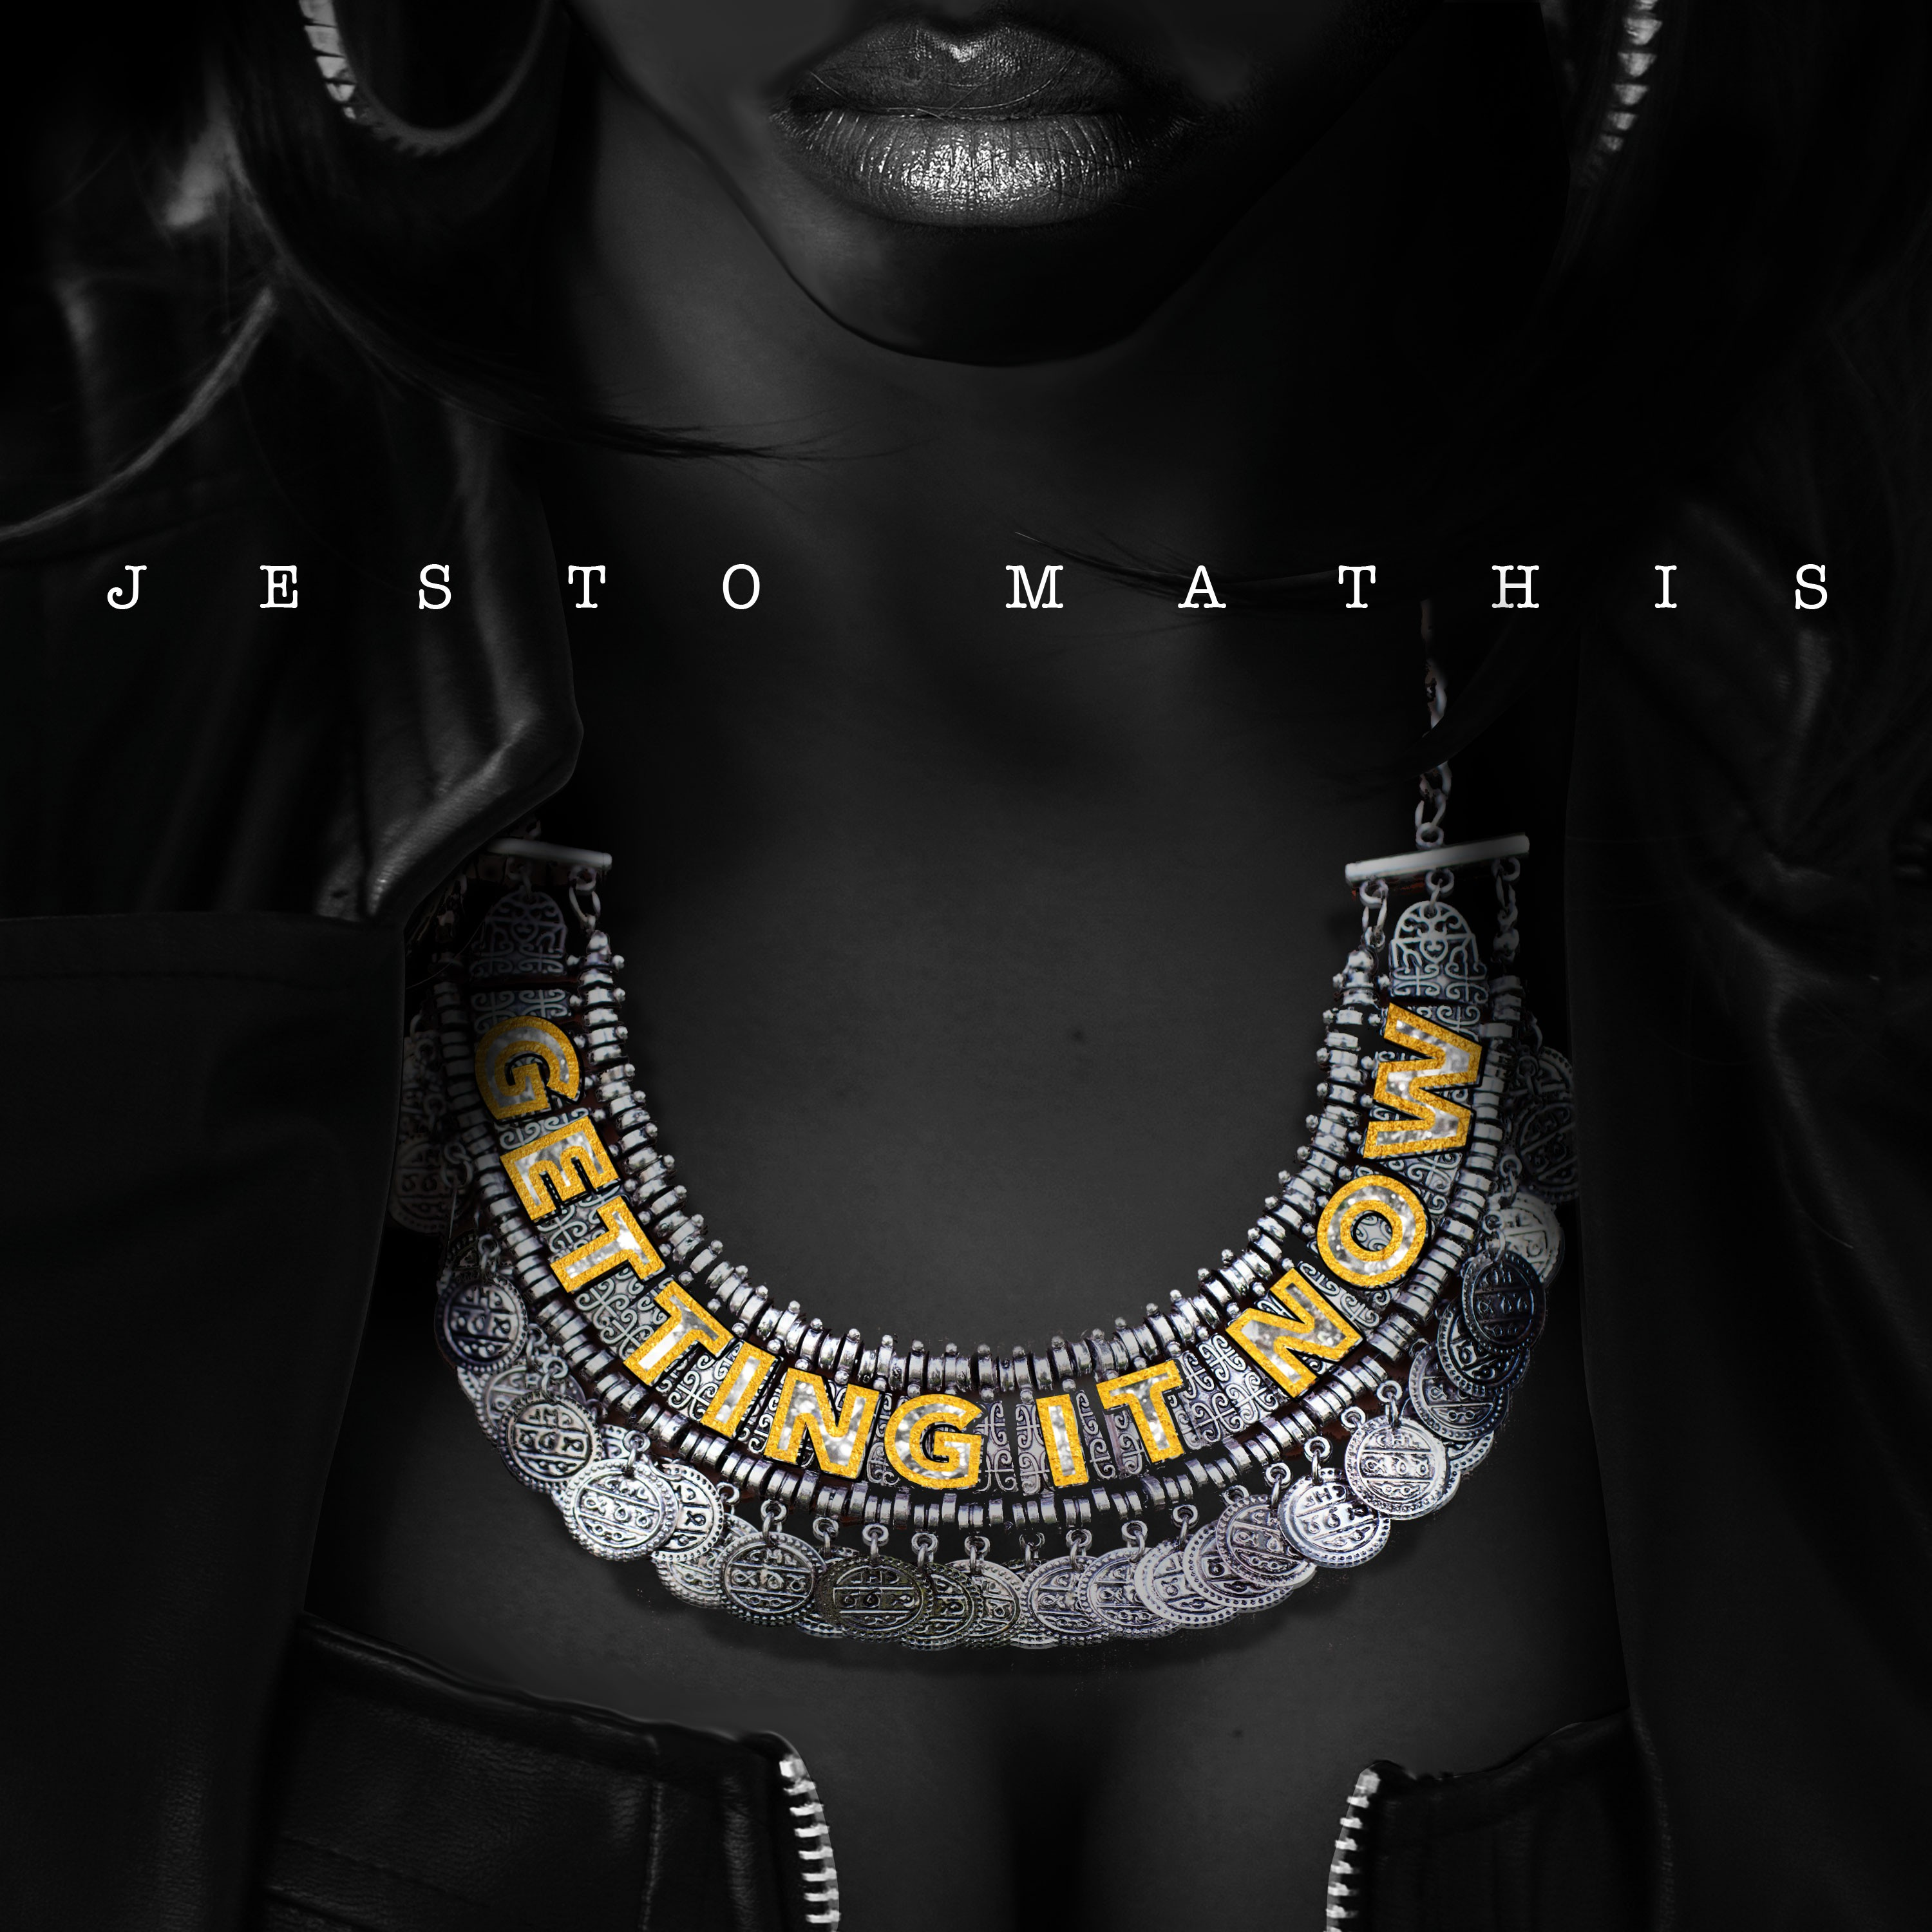 """Jesto Mathis """"Getting It Now"""" Single Cover Art"""